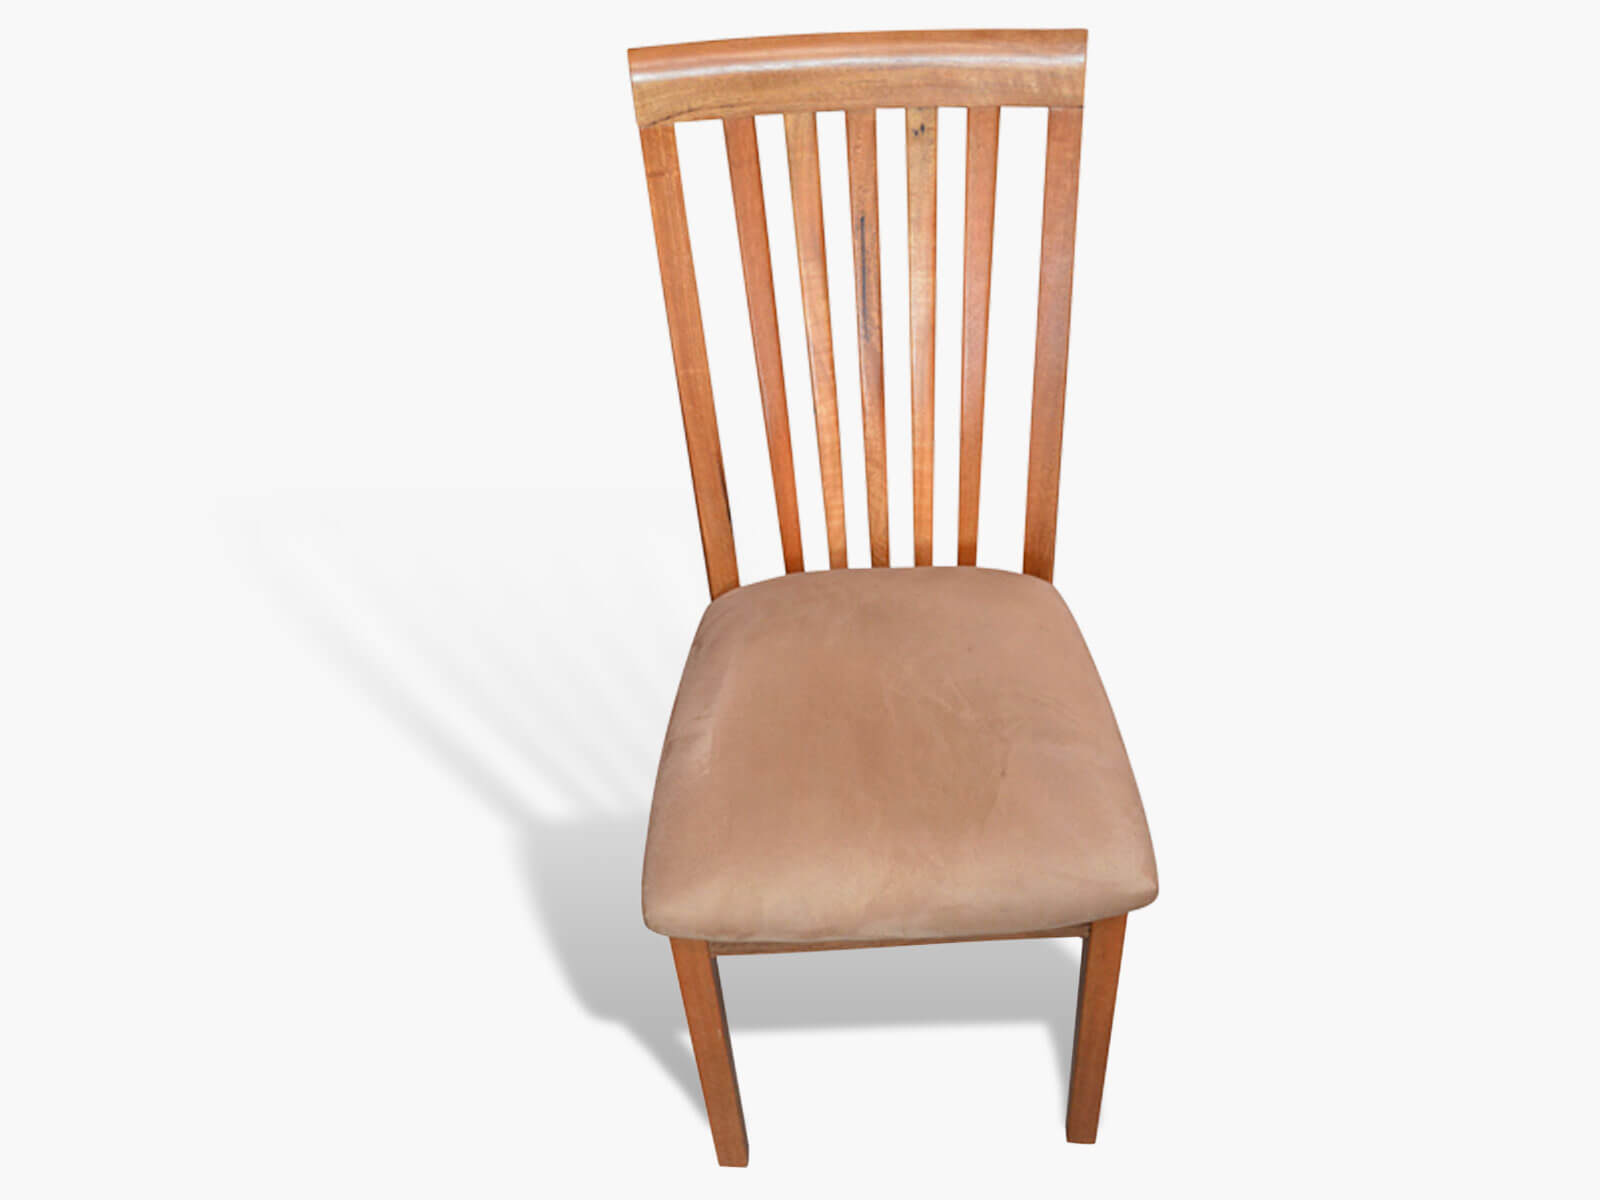 Onslow-Marri-Dining-Chair Timber Furniture